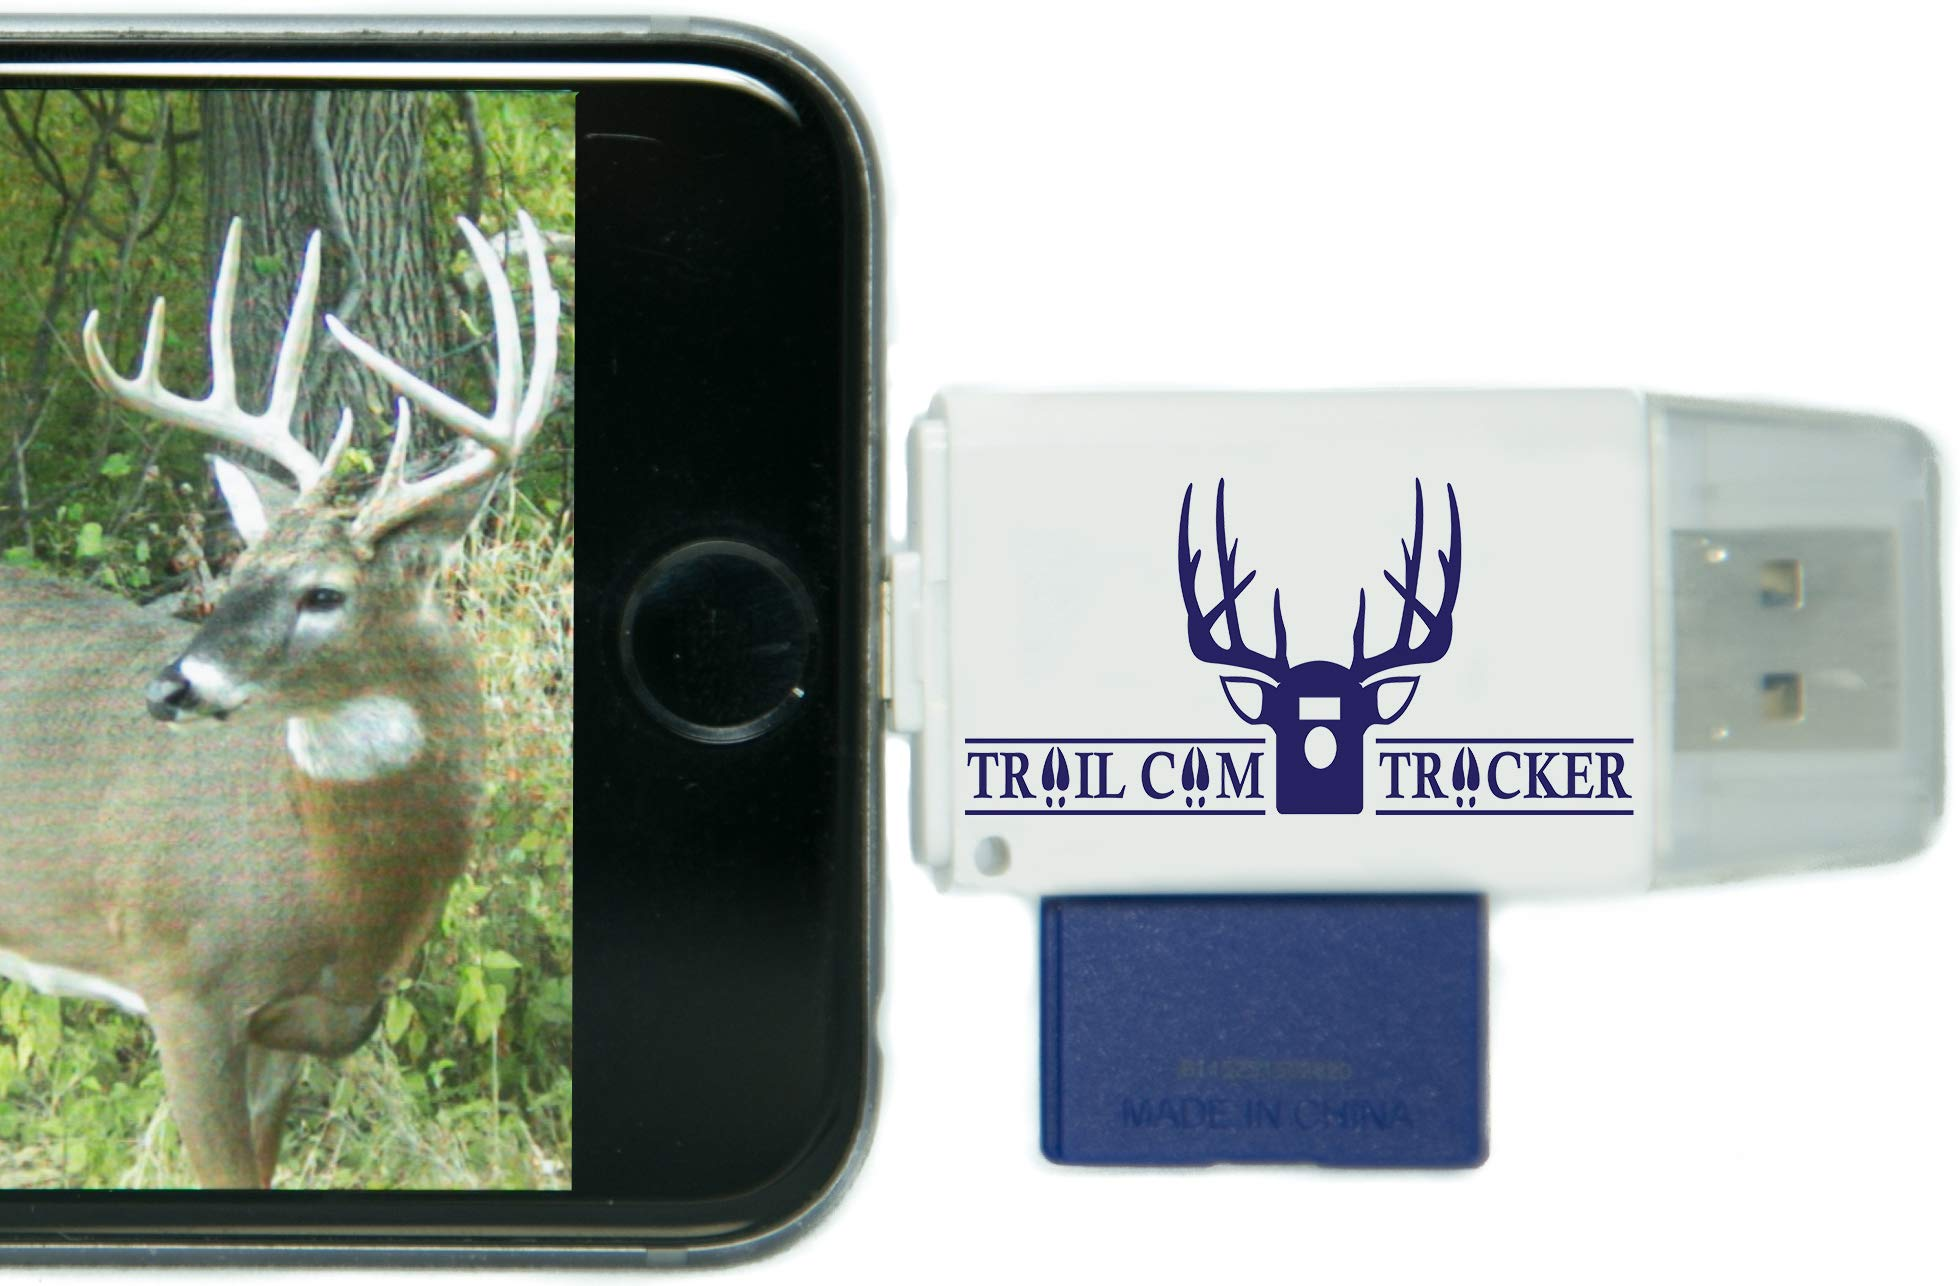 Trail Cam Tracker Trail Camera SD Card Reader for iPhone & Android - The Best & Fastest Game Camera SD Card Viewer - Smartphone Memory Card Reader - Free Case (iPhone (All-in-one Version)) by Trail Cam Tracker